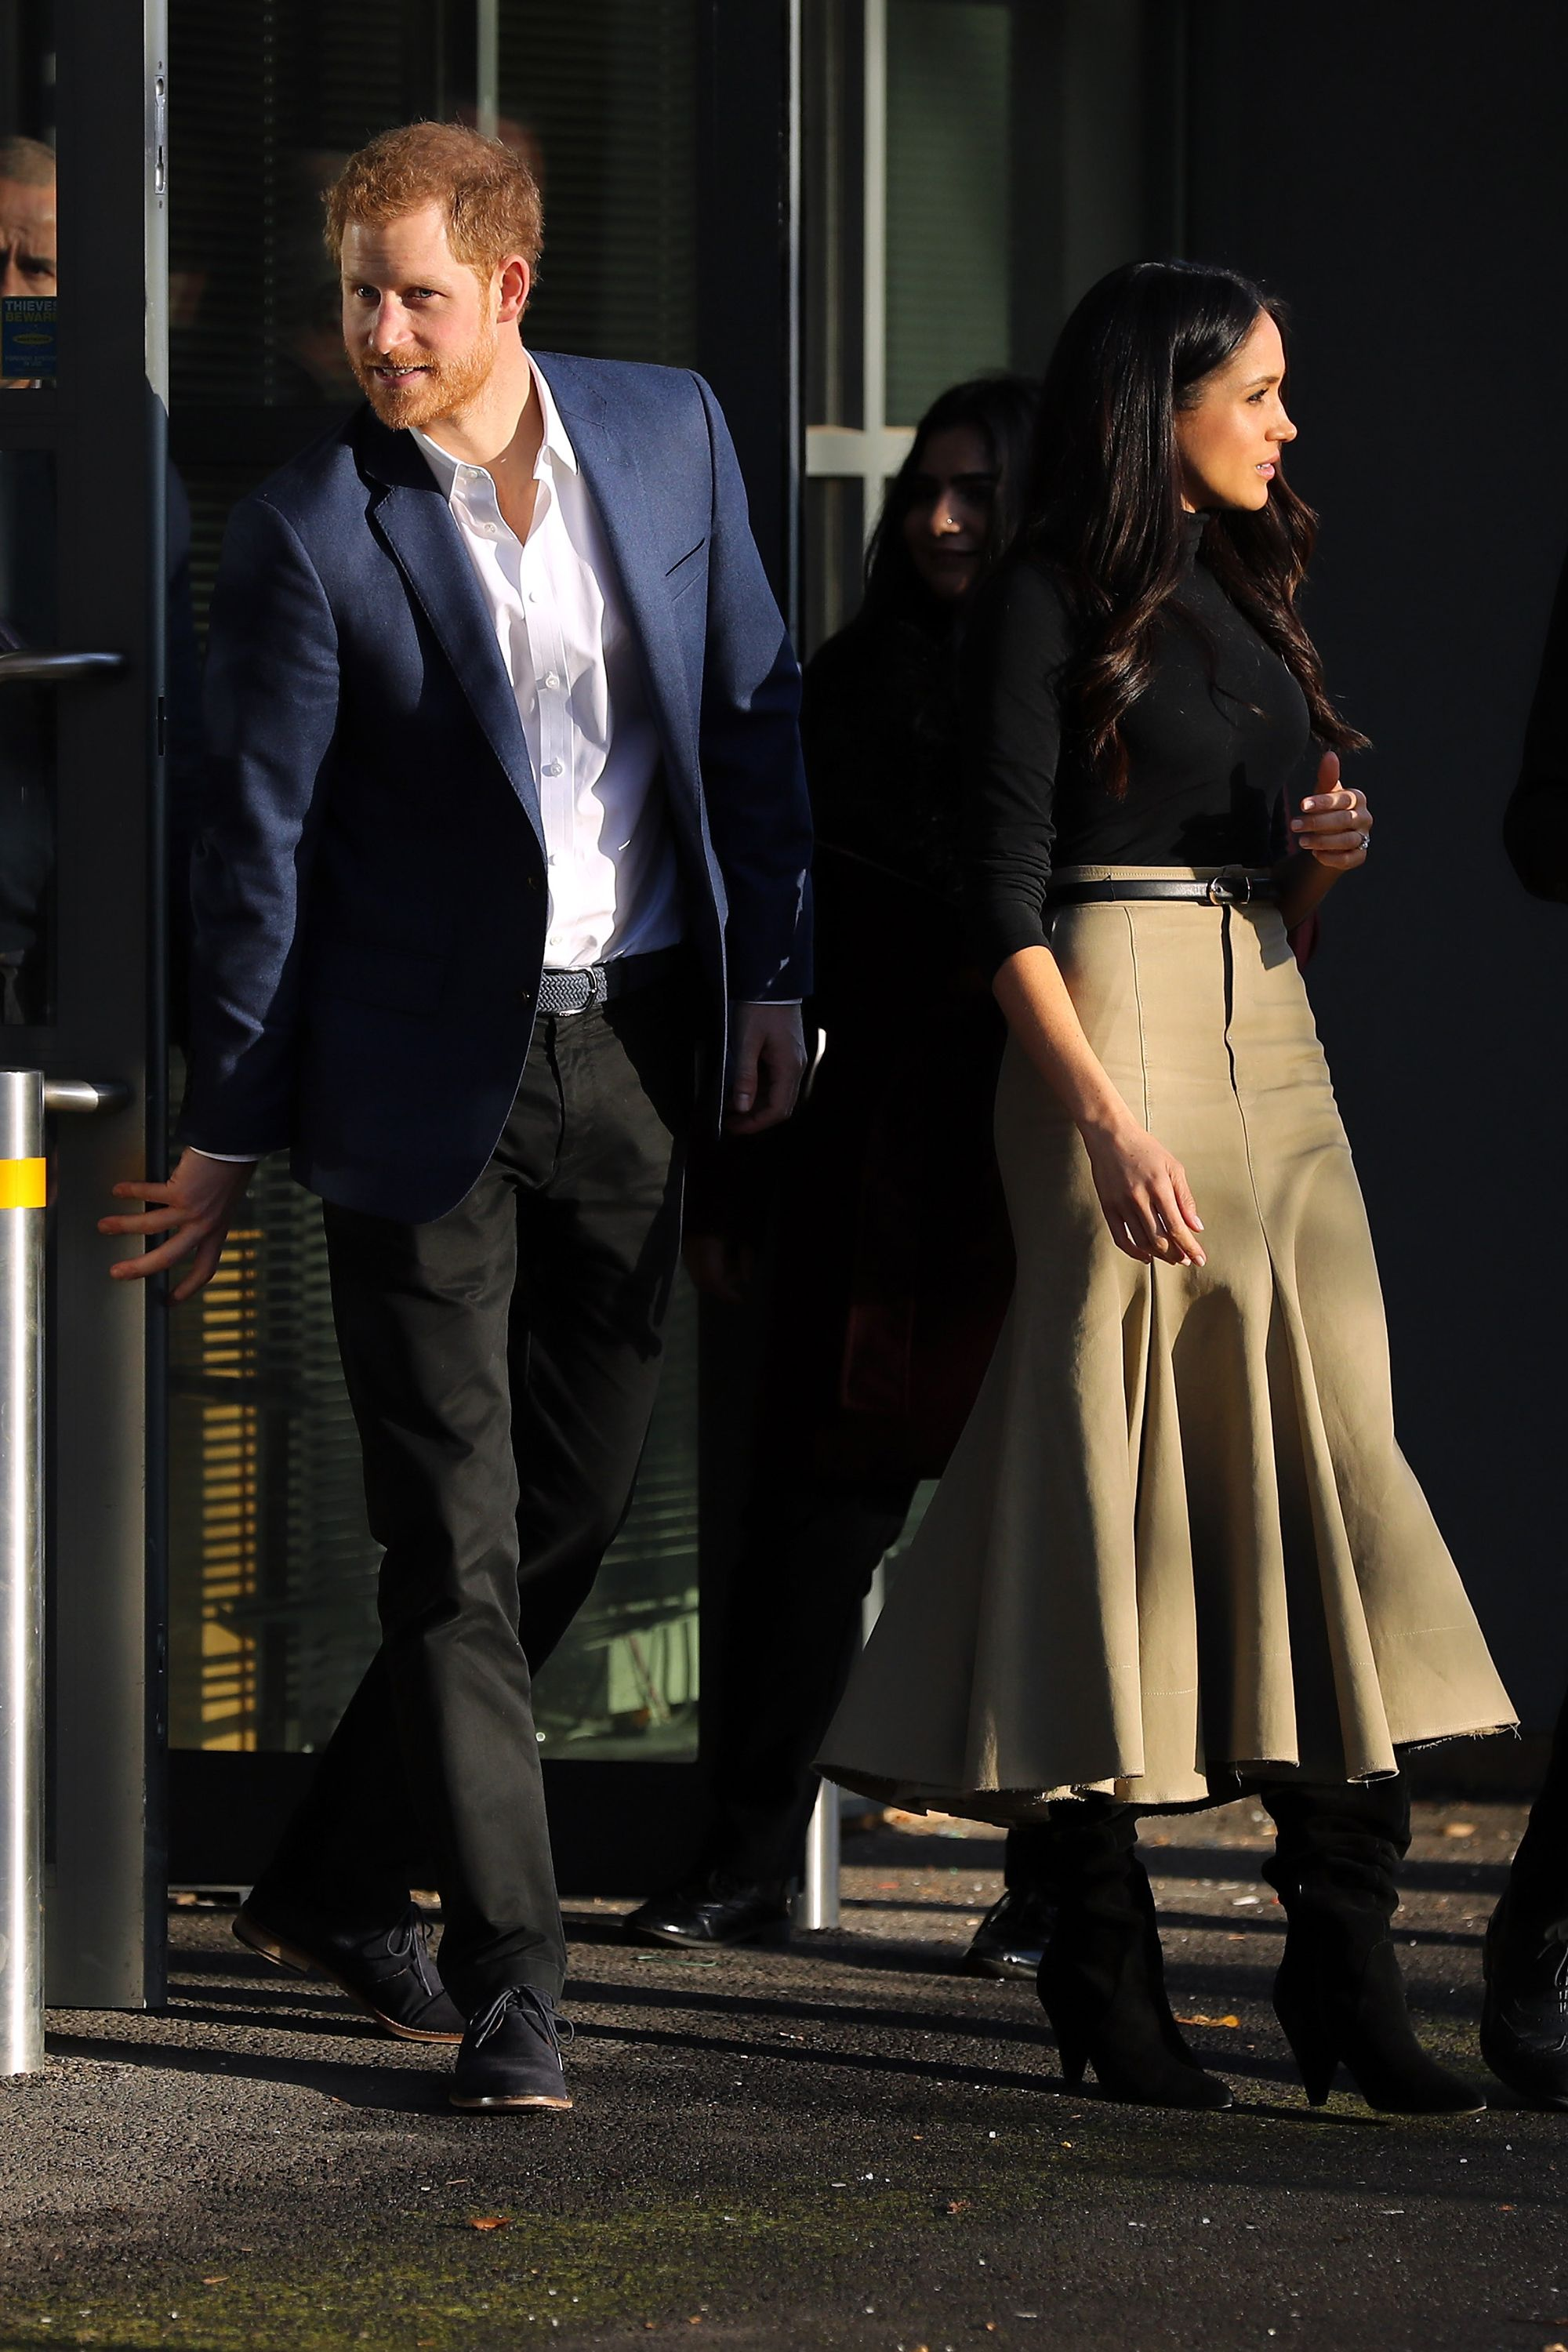 Meghan Markle's skirt